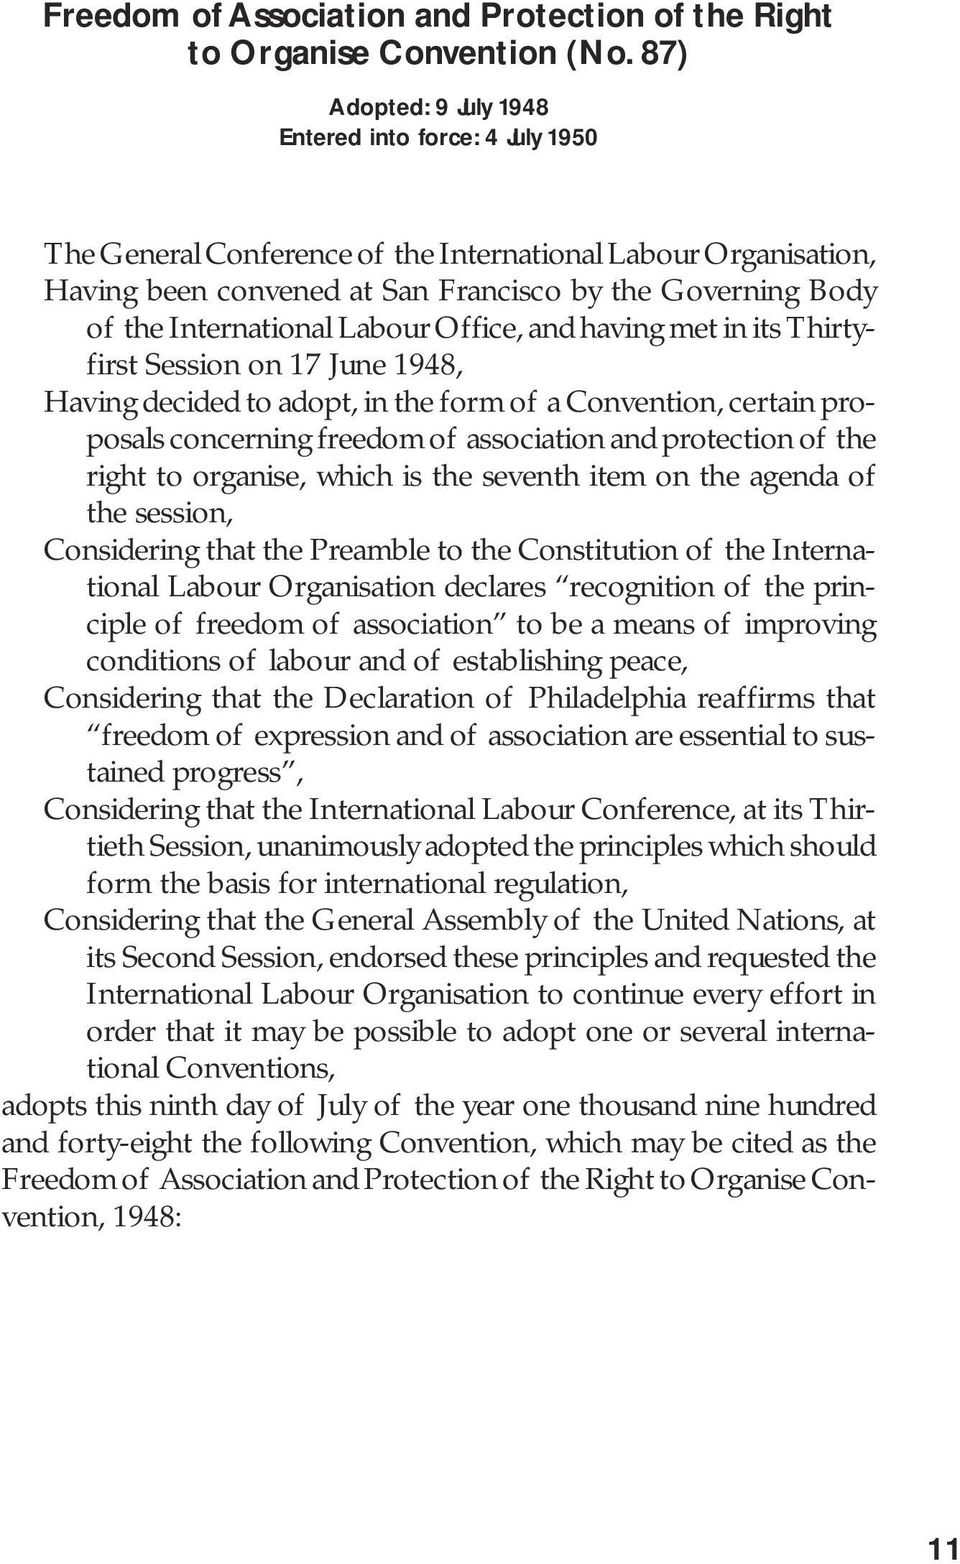 International Labour Office, and having met in its Thirtyfirst Session on 17 June 1948, Having decided to adopt, in the form of a Convention, certain proposals concerning freedom of association and